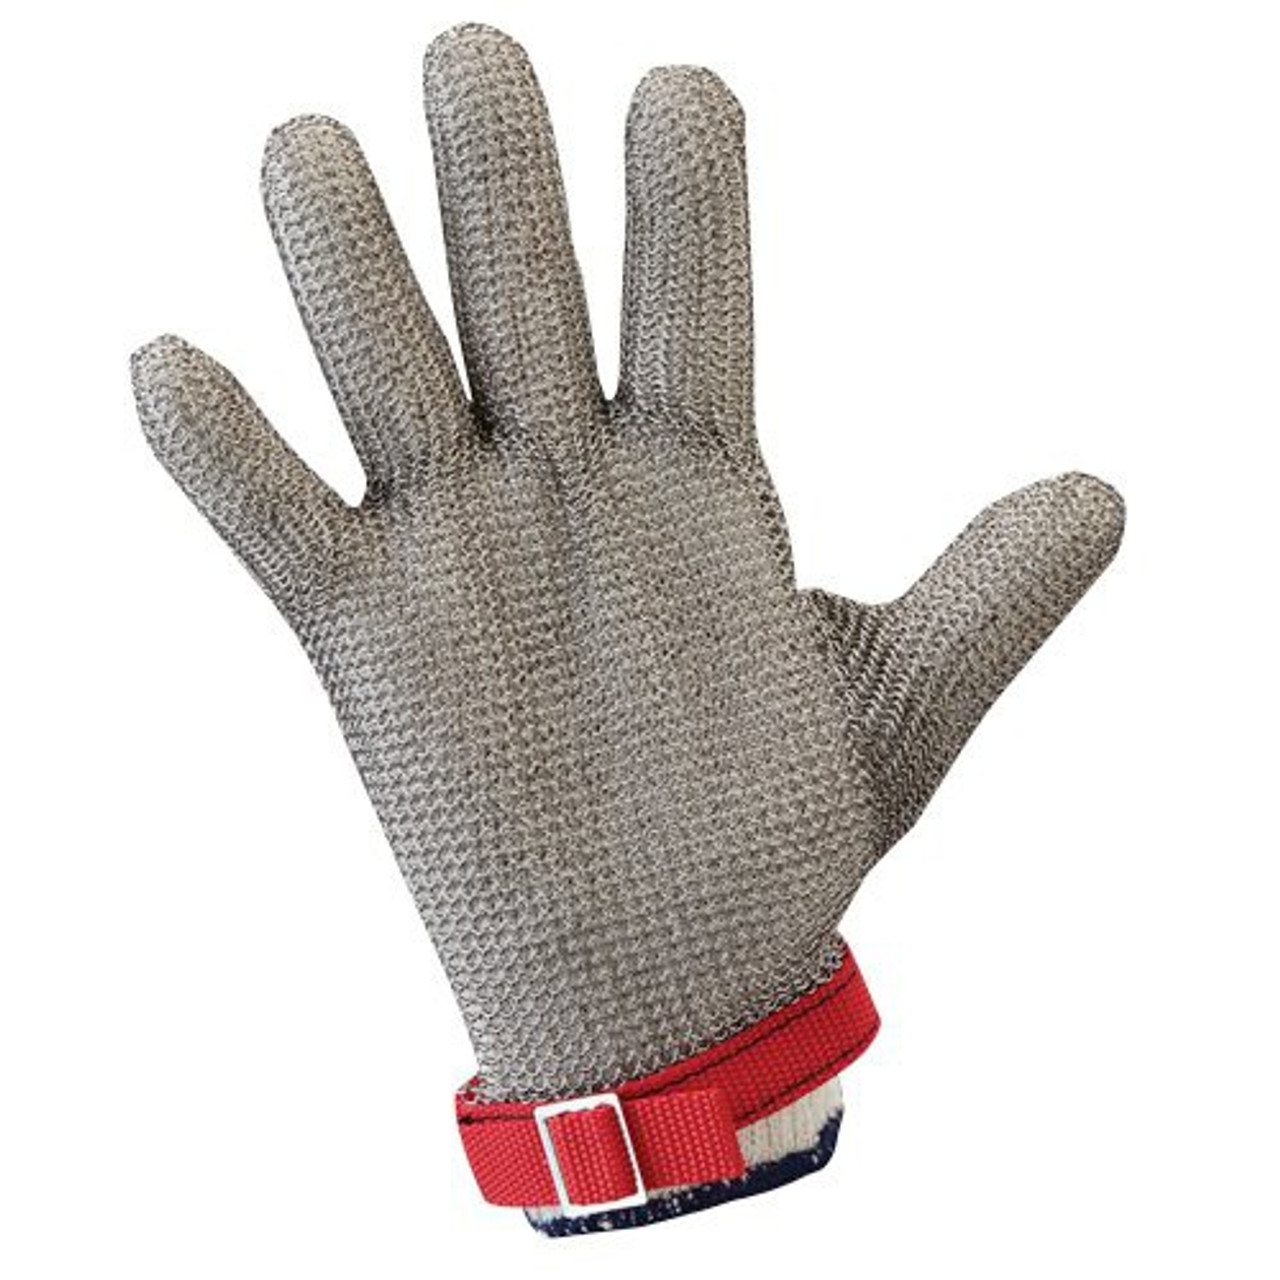 WorkHorse Stainless Steel Metal Mesh Gloves - Wrist Length Cuff